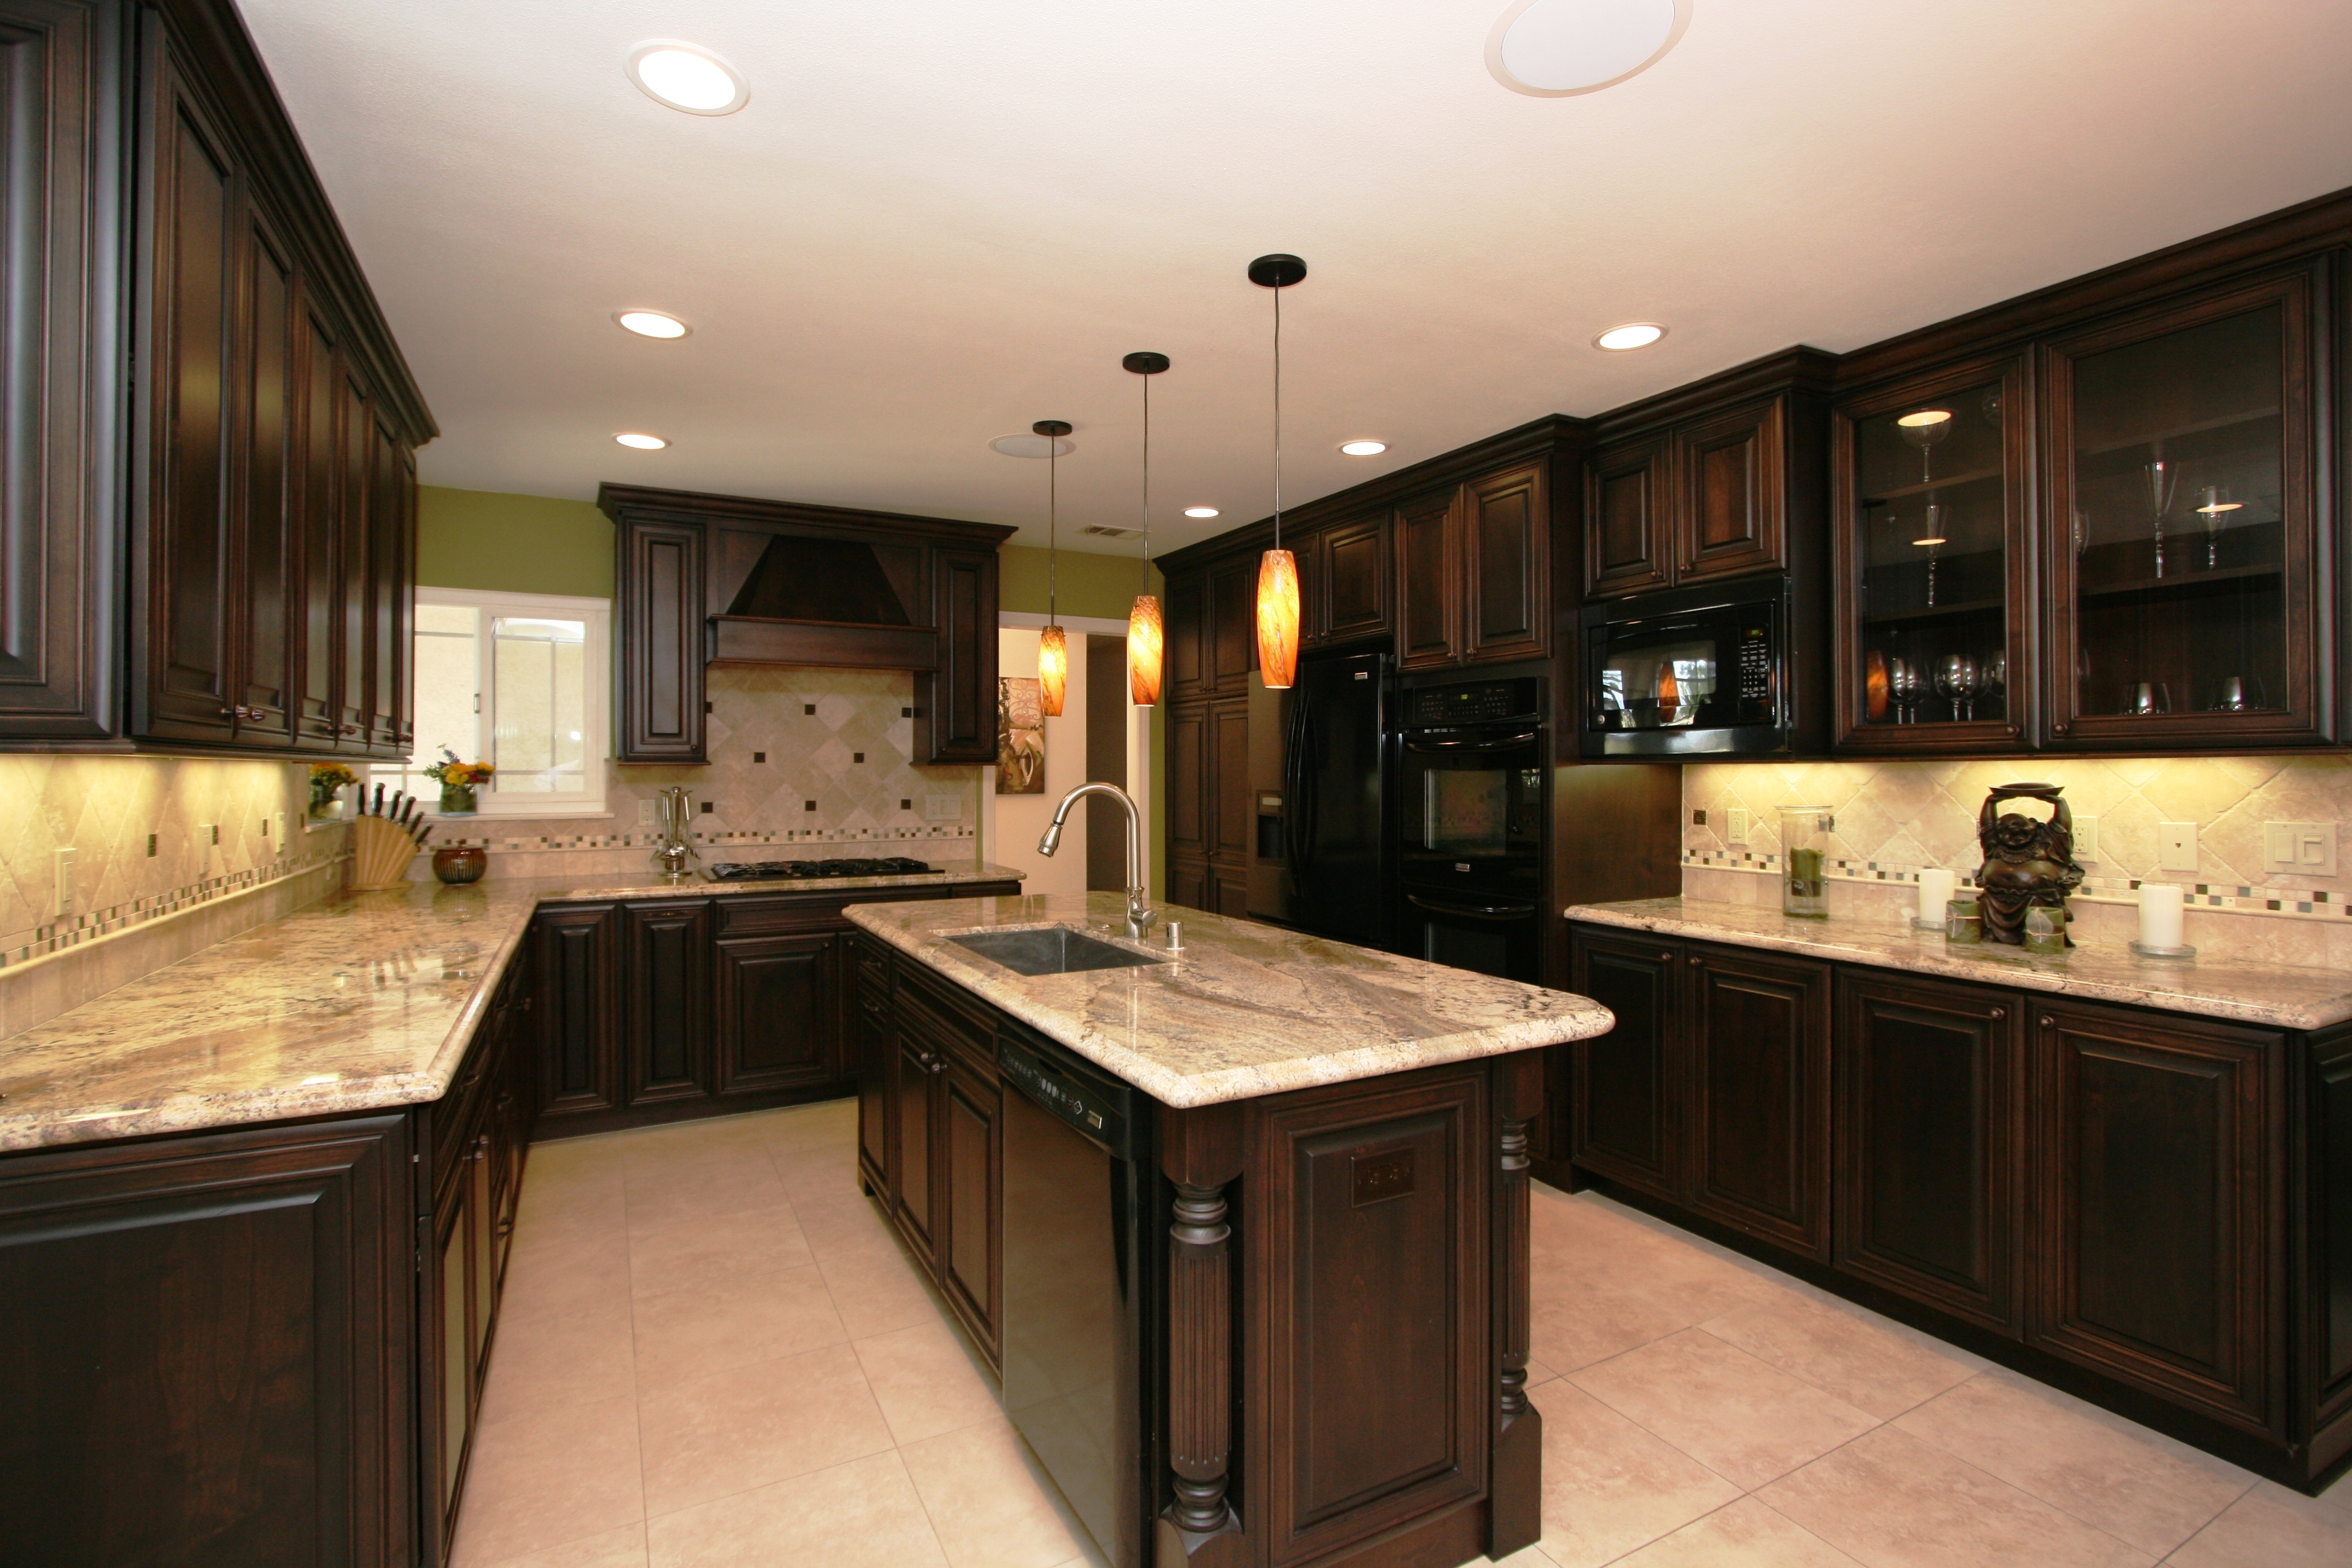 Kitchen Cabinets And Countertops Ideaskitchen cabinets and countertops designs outofhome